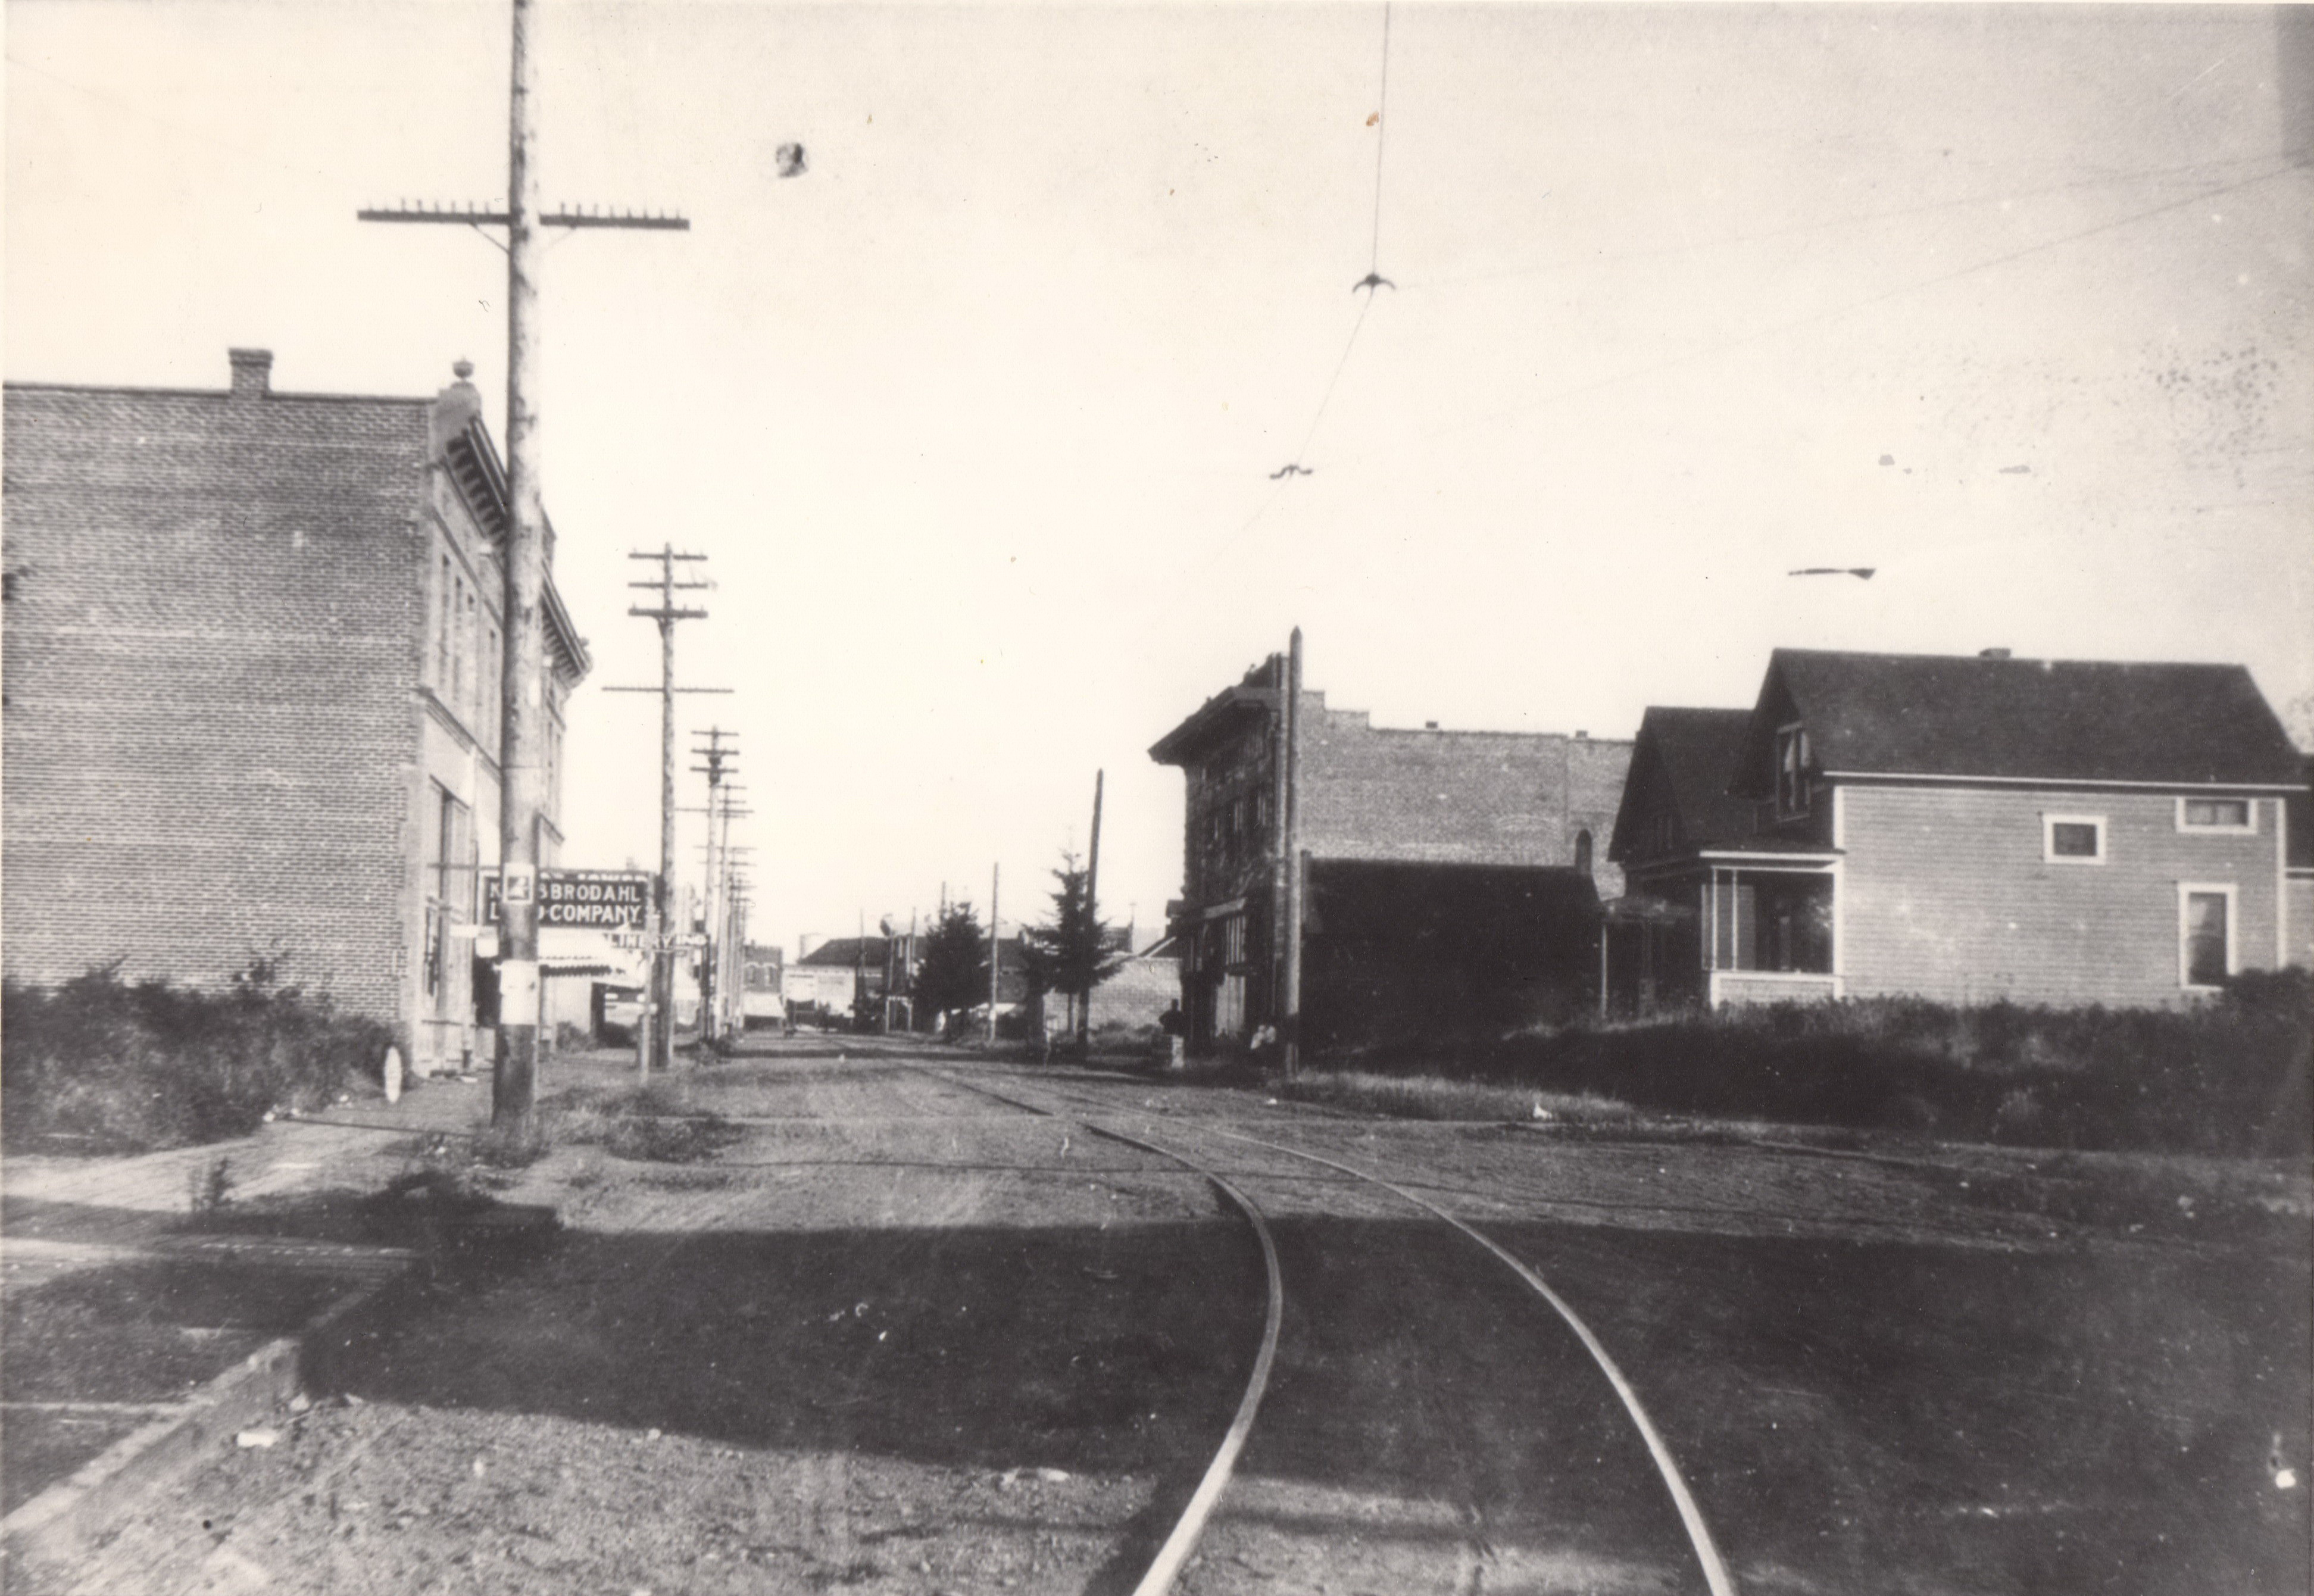 Jersey McChesney (8947 N Lombard 1909 King and Brodahl) on left, Crouchley and Omanday on right